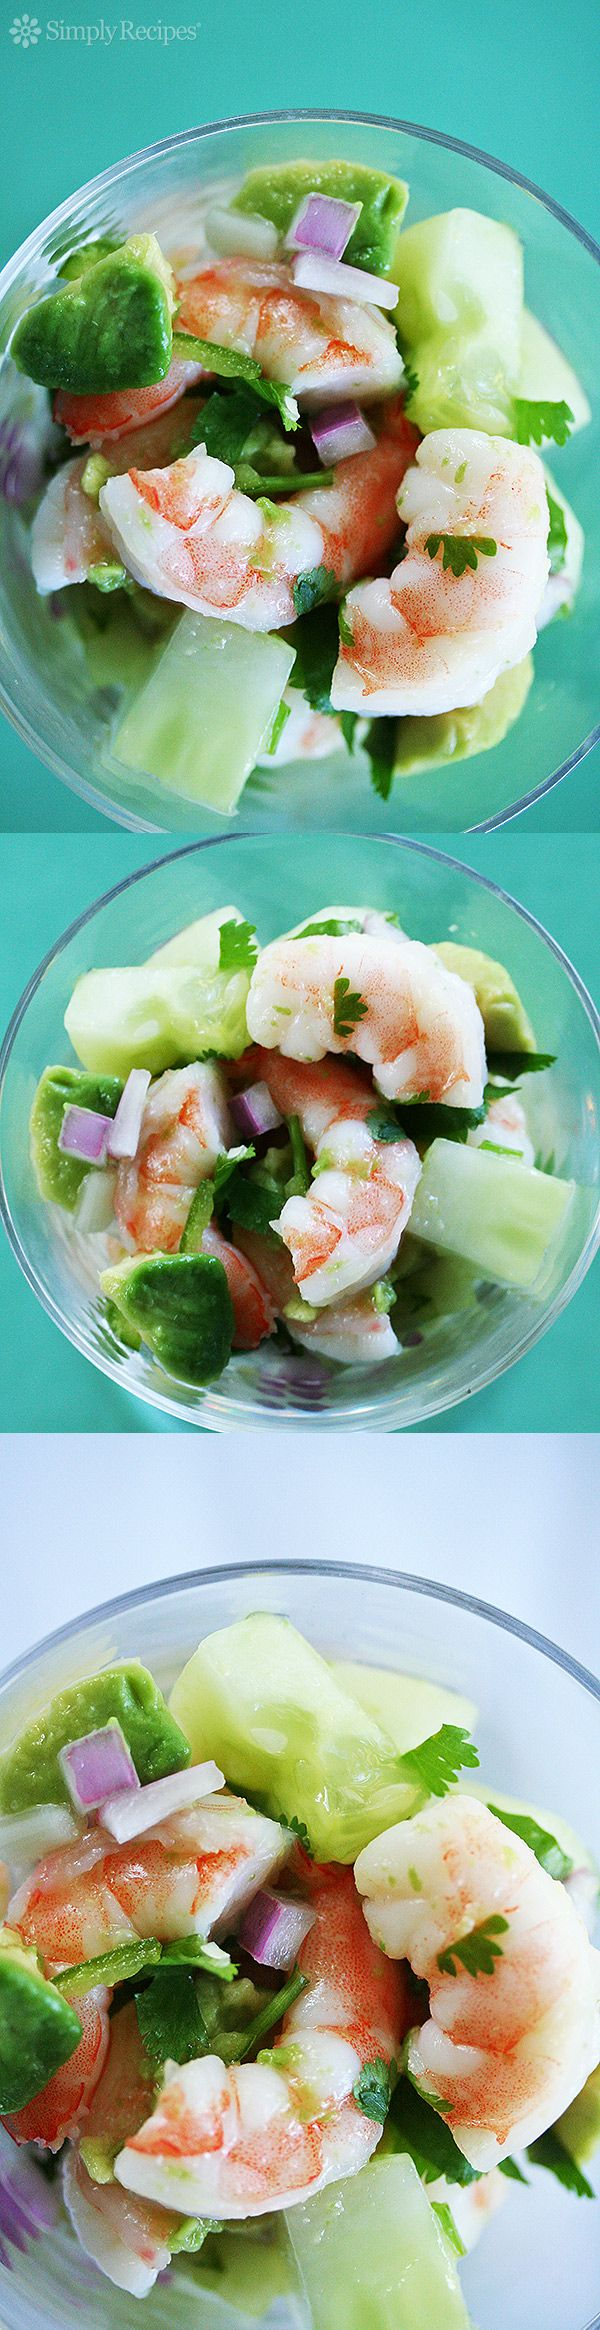 ... Shrimp ceviche on Pinterest | Ceviche recipe, Ceviche and Shrimp salad